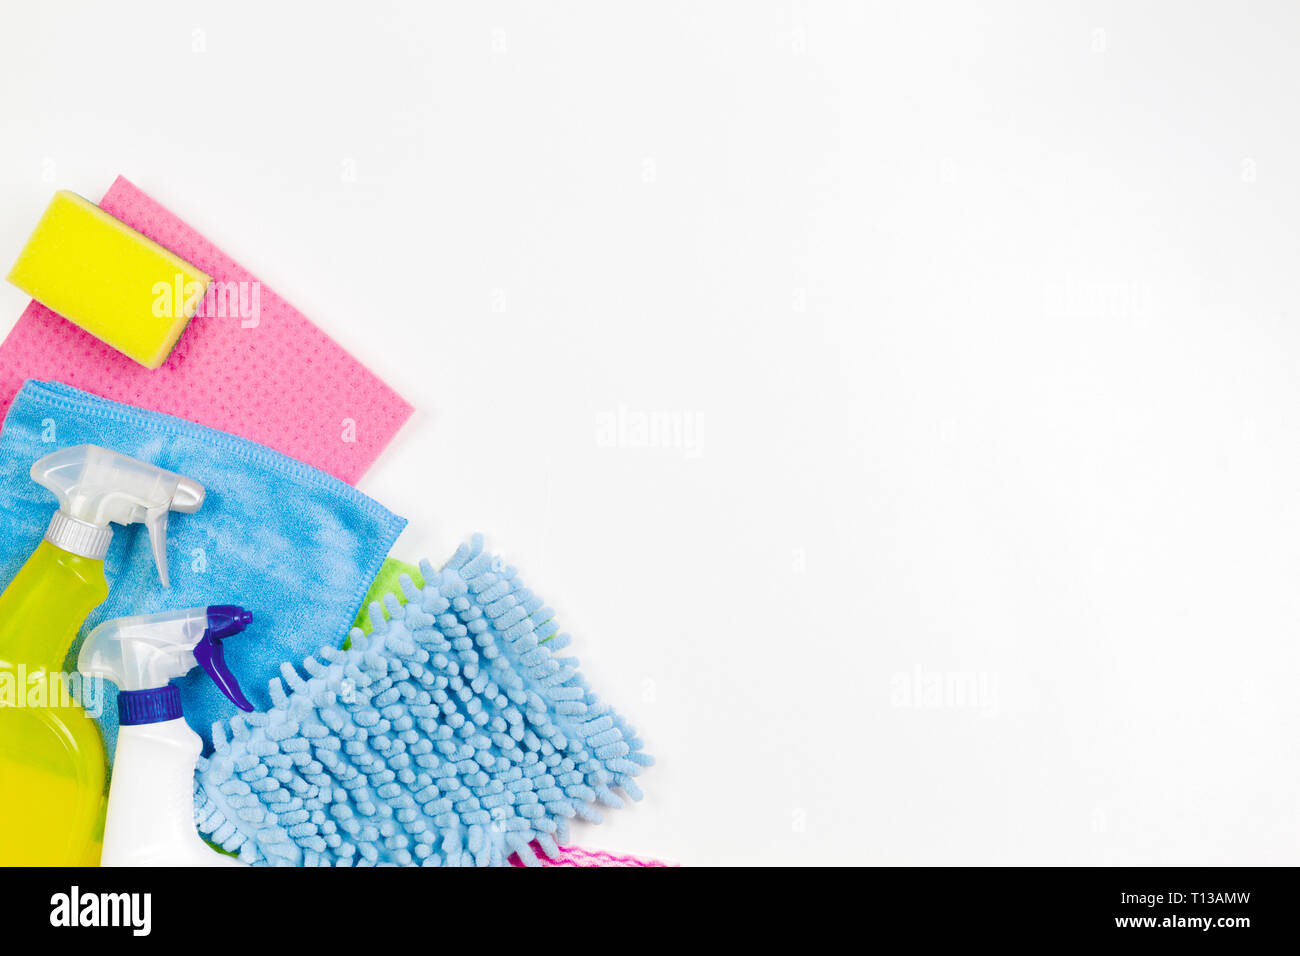 Housework, housekeeping, household, cleaning service concept. Bottles of detergent, rags and sponges on white background - Stock Image